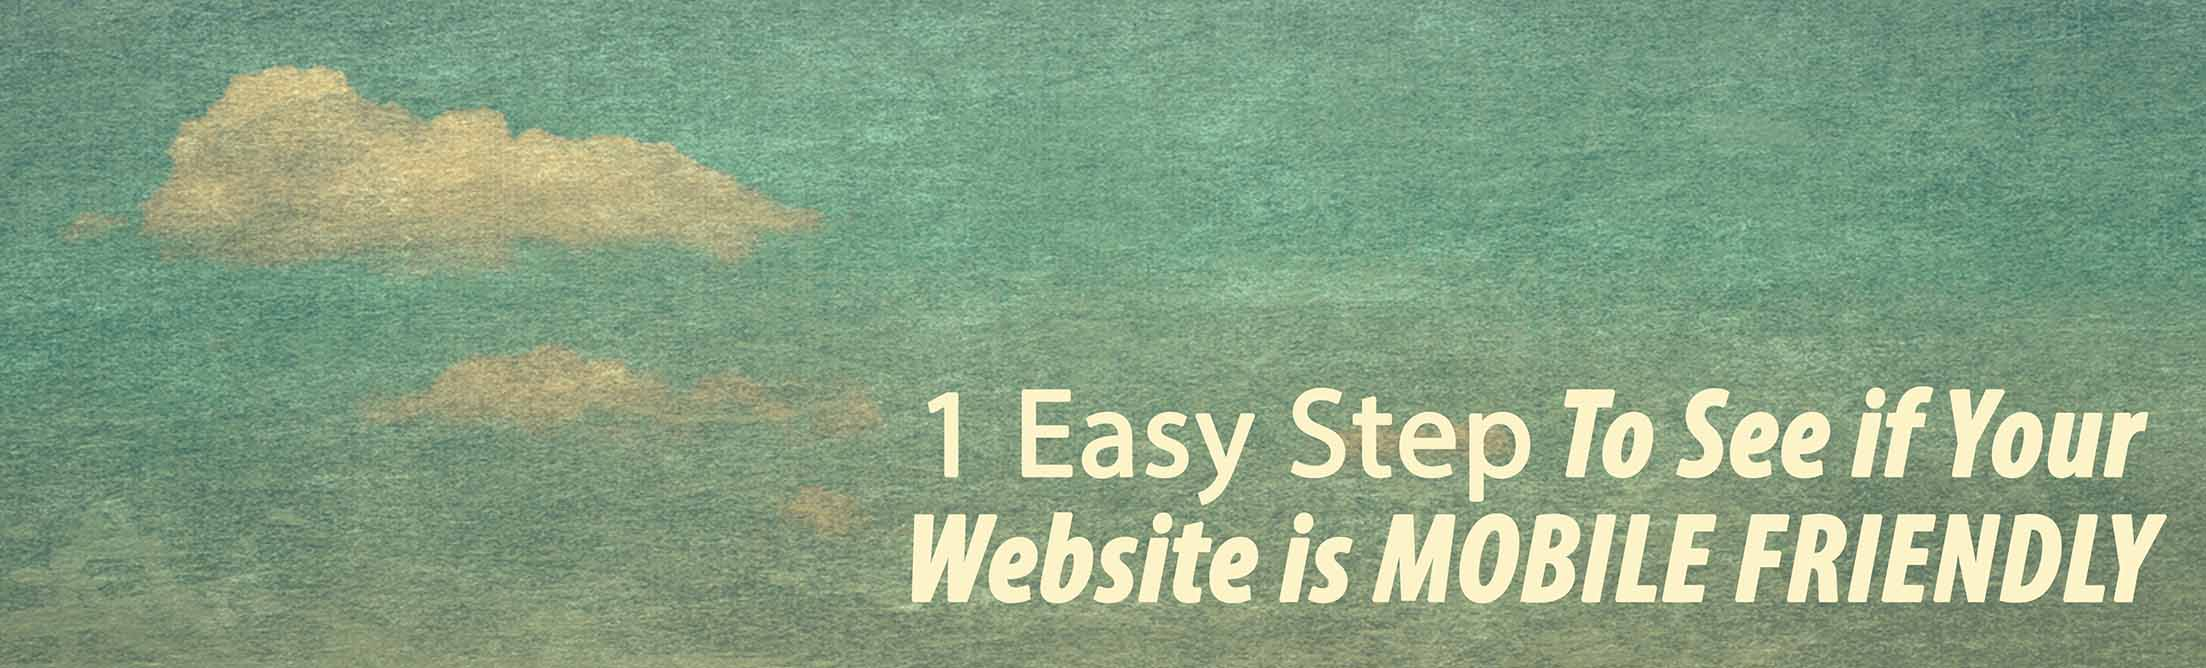 Is my website mobile friendly. 1 easy step to tell...